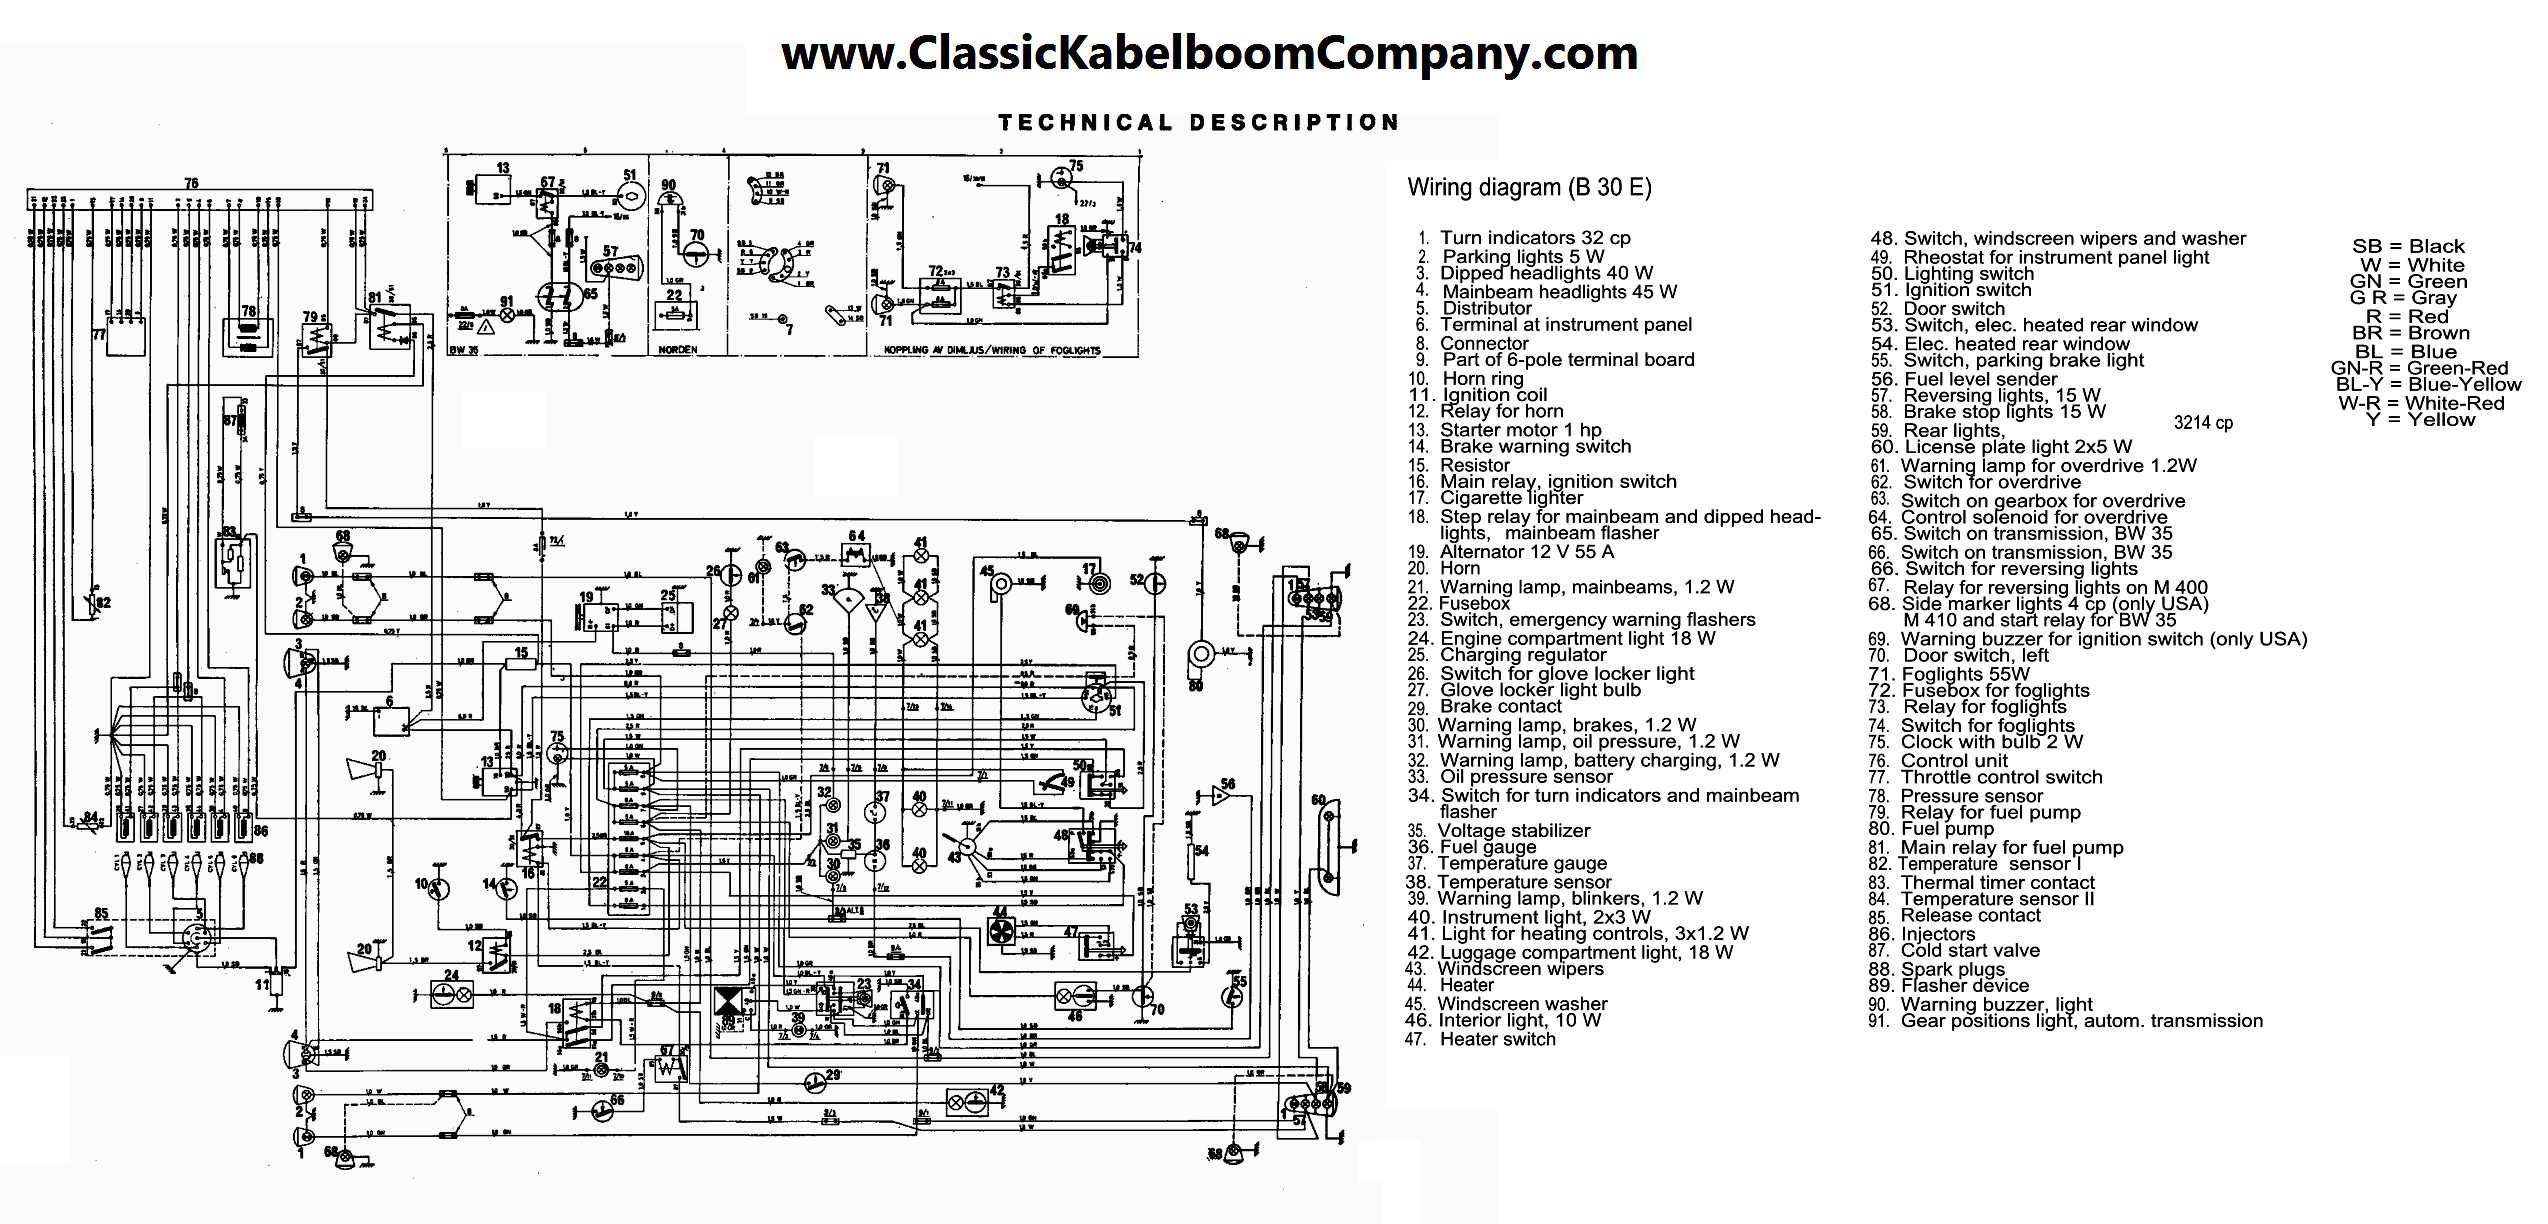 Classic Kabelboom Company Elektrisch Bedrading Schema Volvo Electric Wiring Diagram 162 164 165 1975 Electrical